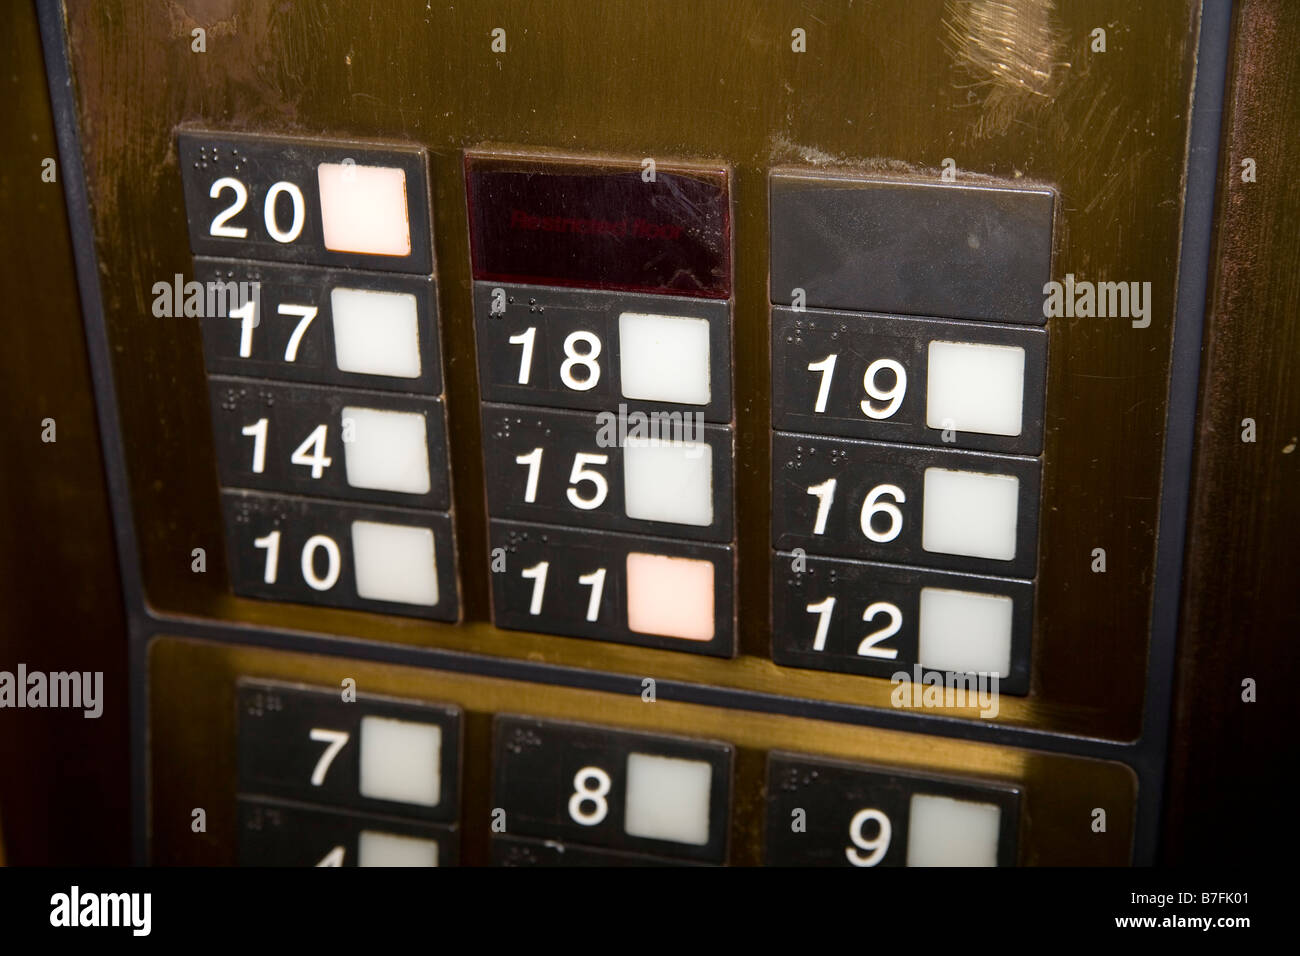 Buttons on elevator panel show no 13th floor humoring for 13 floor